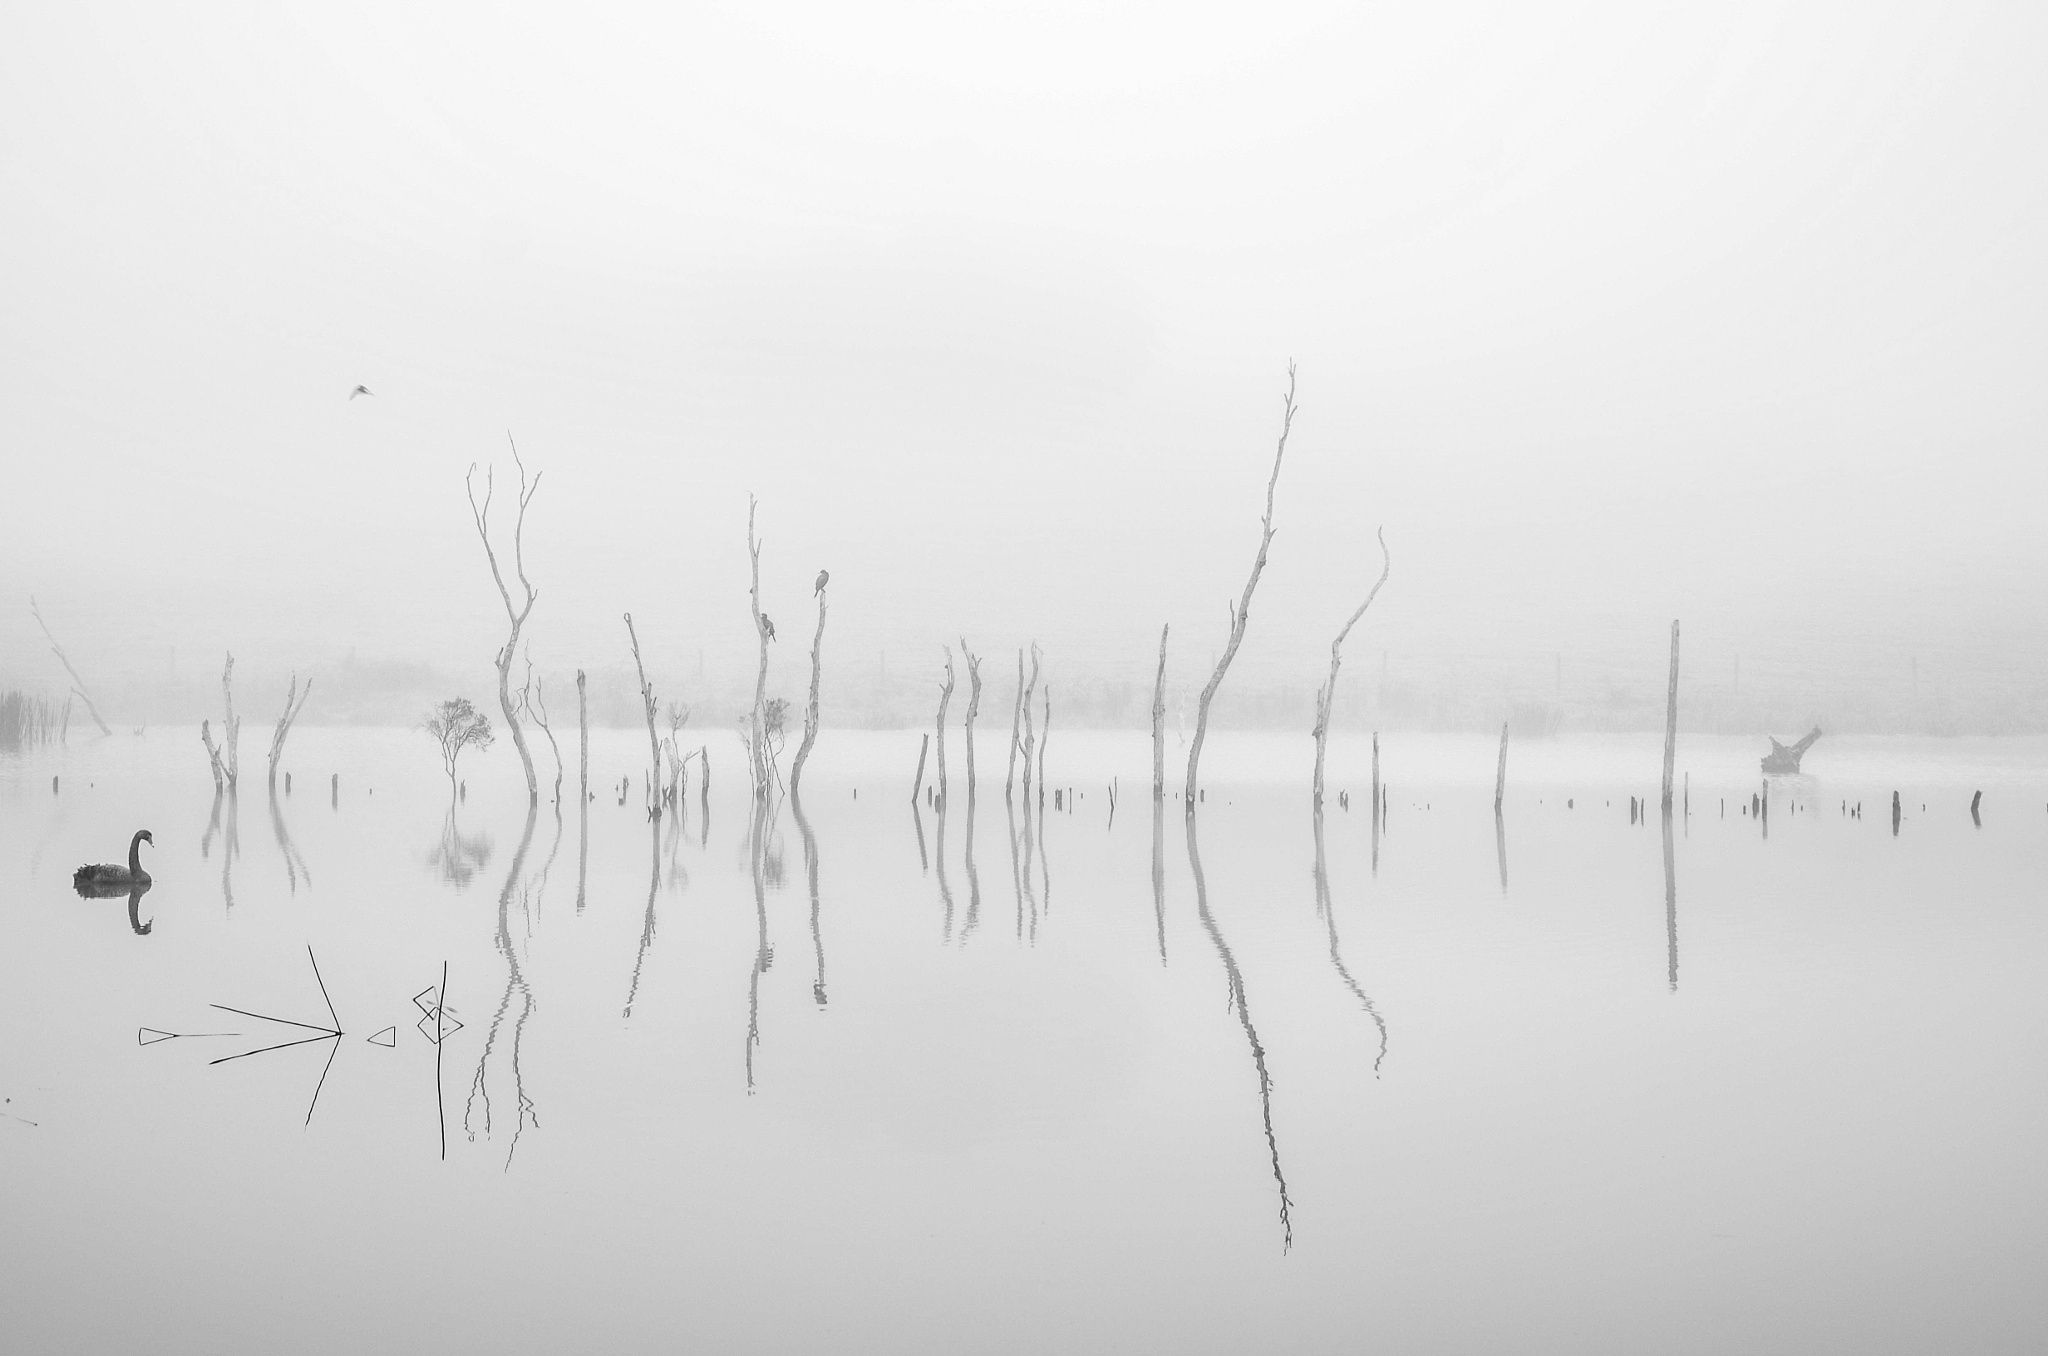 Reflecting on a Foggy Morning by Charlie Hamilton on 500px